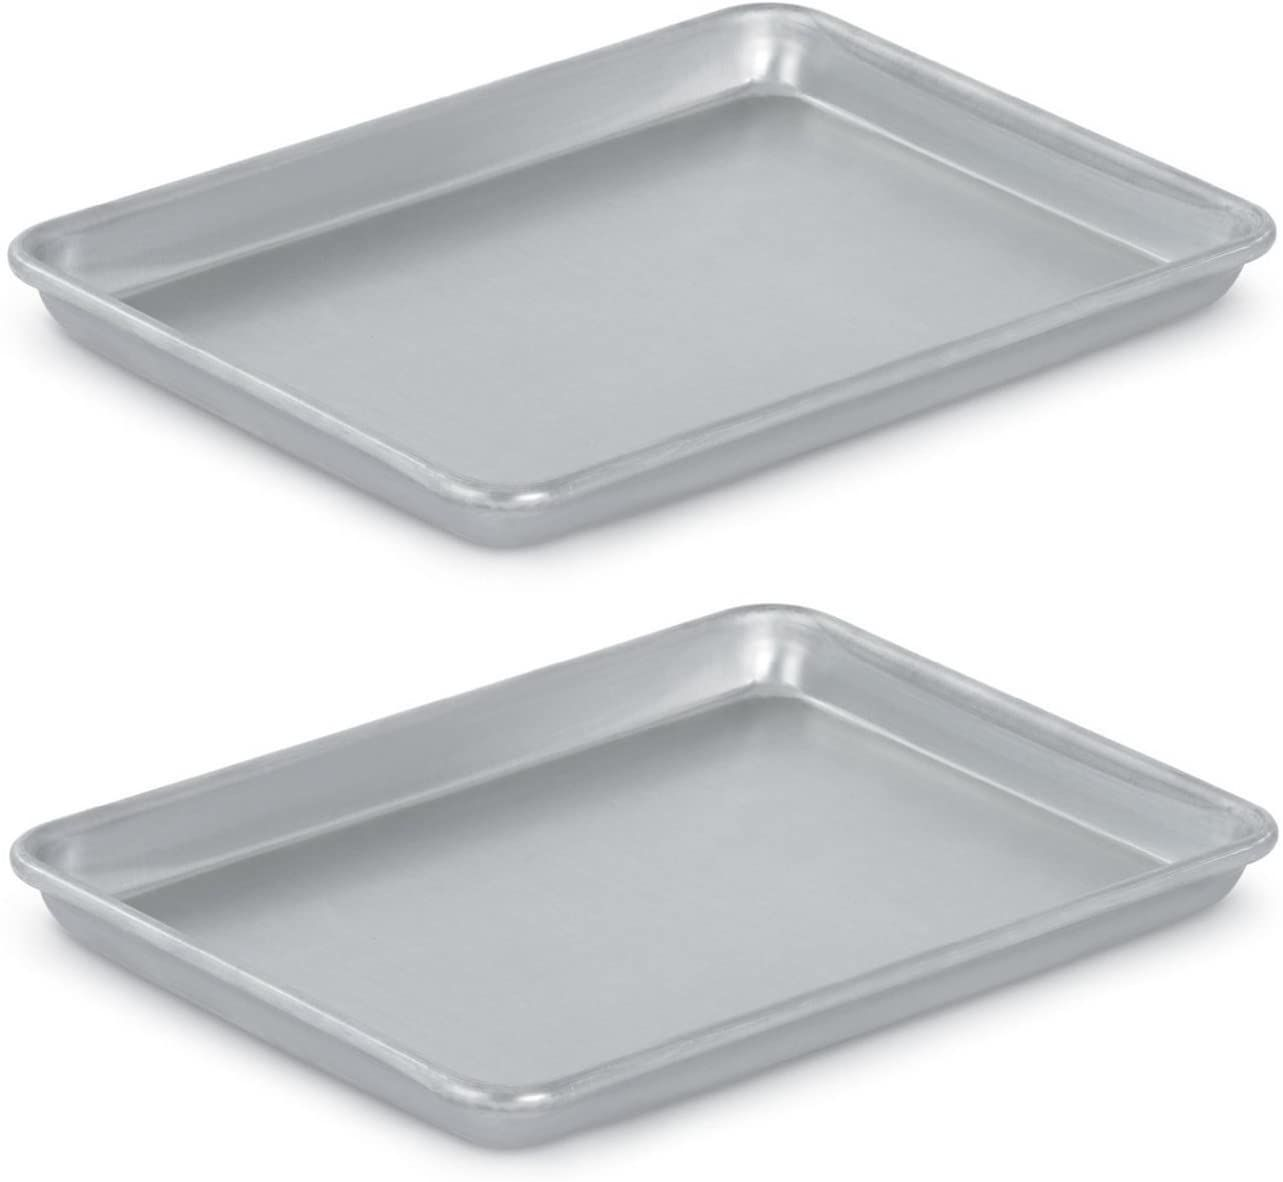 Vollrath 5220 Wear-Ever Collection Quarter-Size Sheet Pan